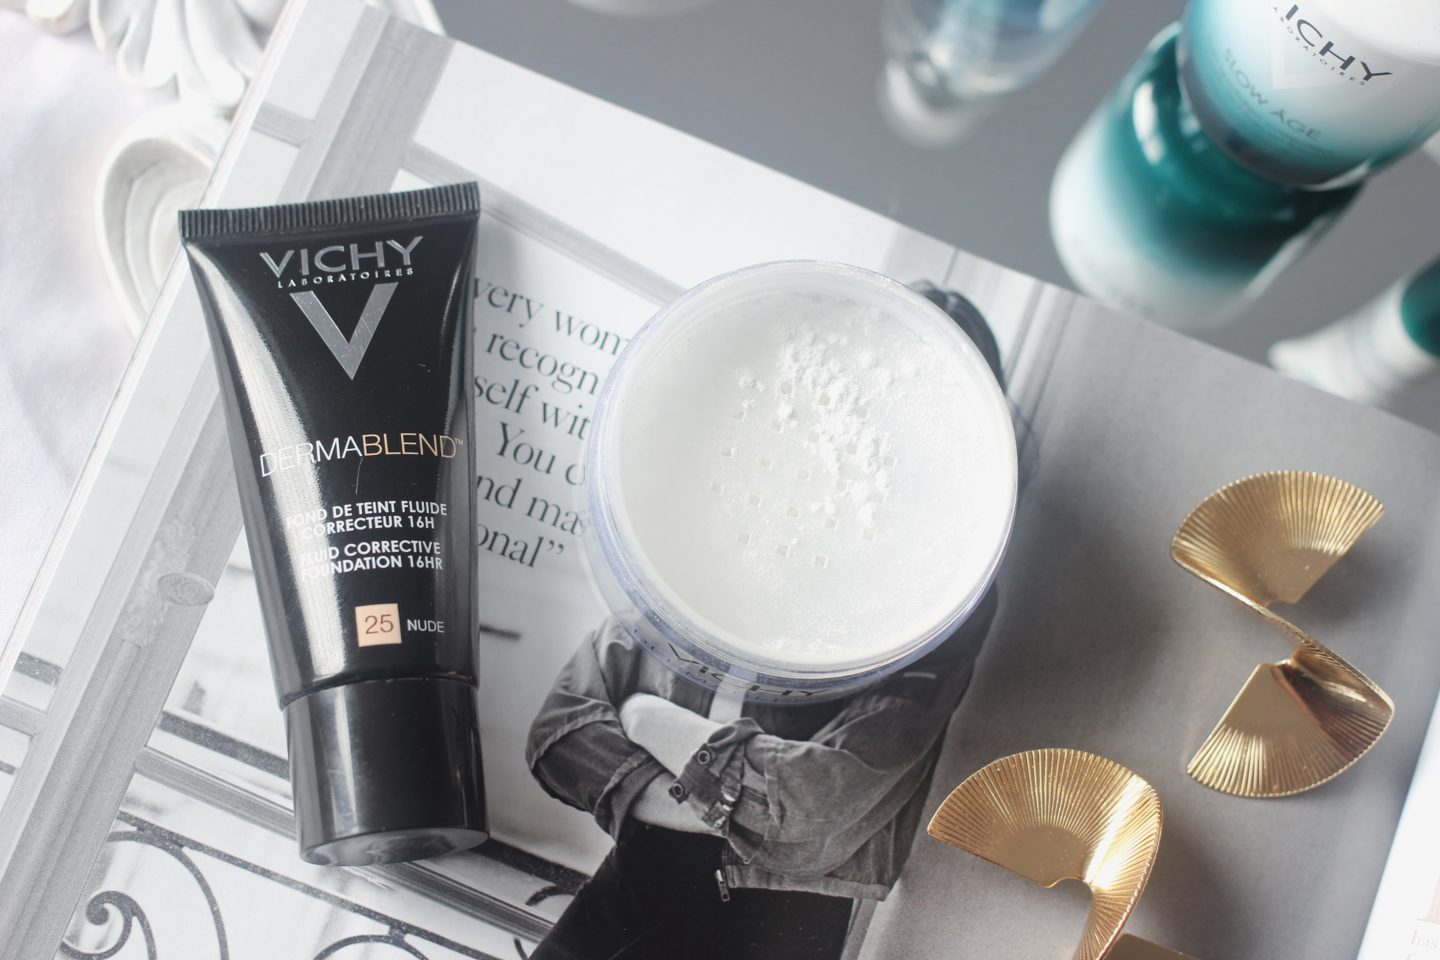 Vichy full coverage Dermablend foundation shade 25